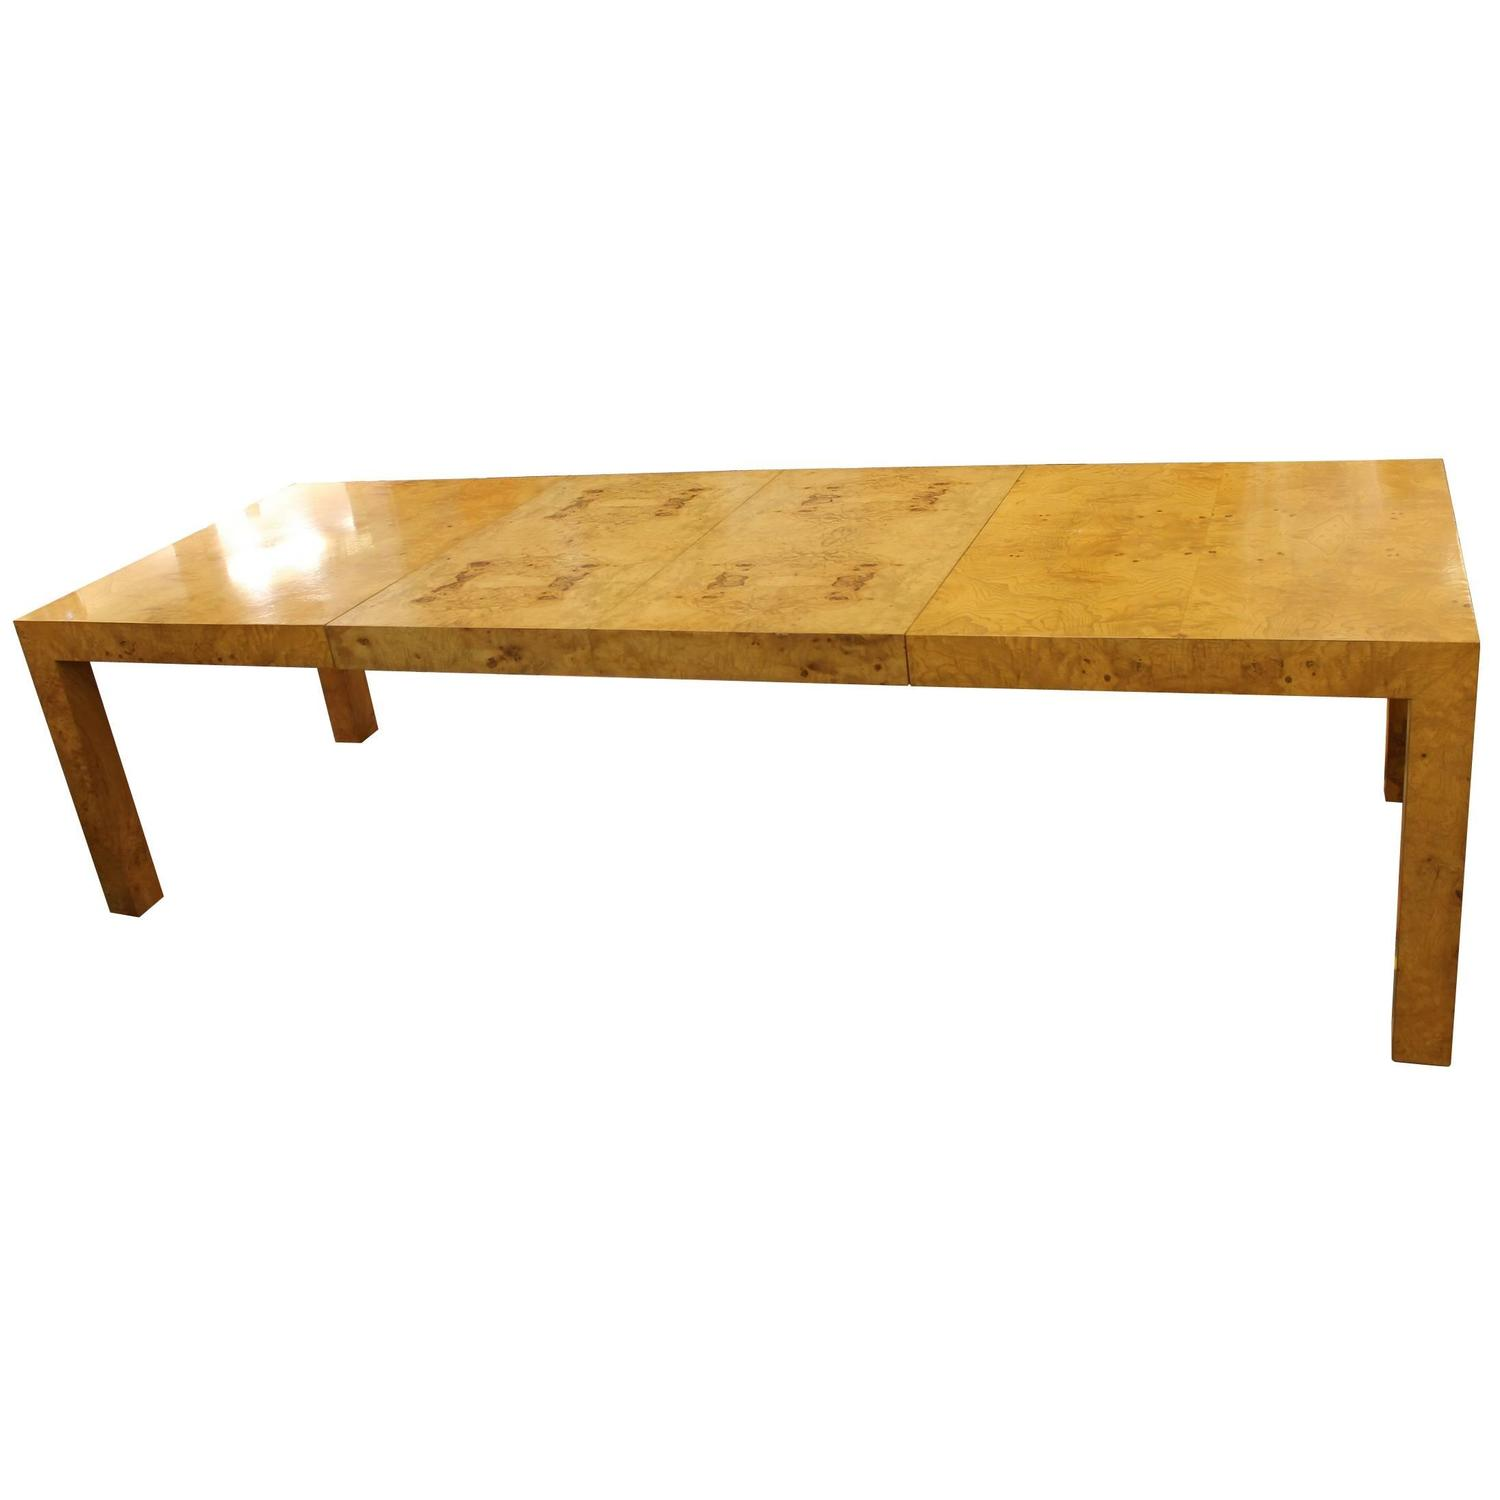 Burl Wood Dining Table With Two Leaves By Milo Baughman At 1stdibs